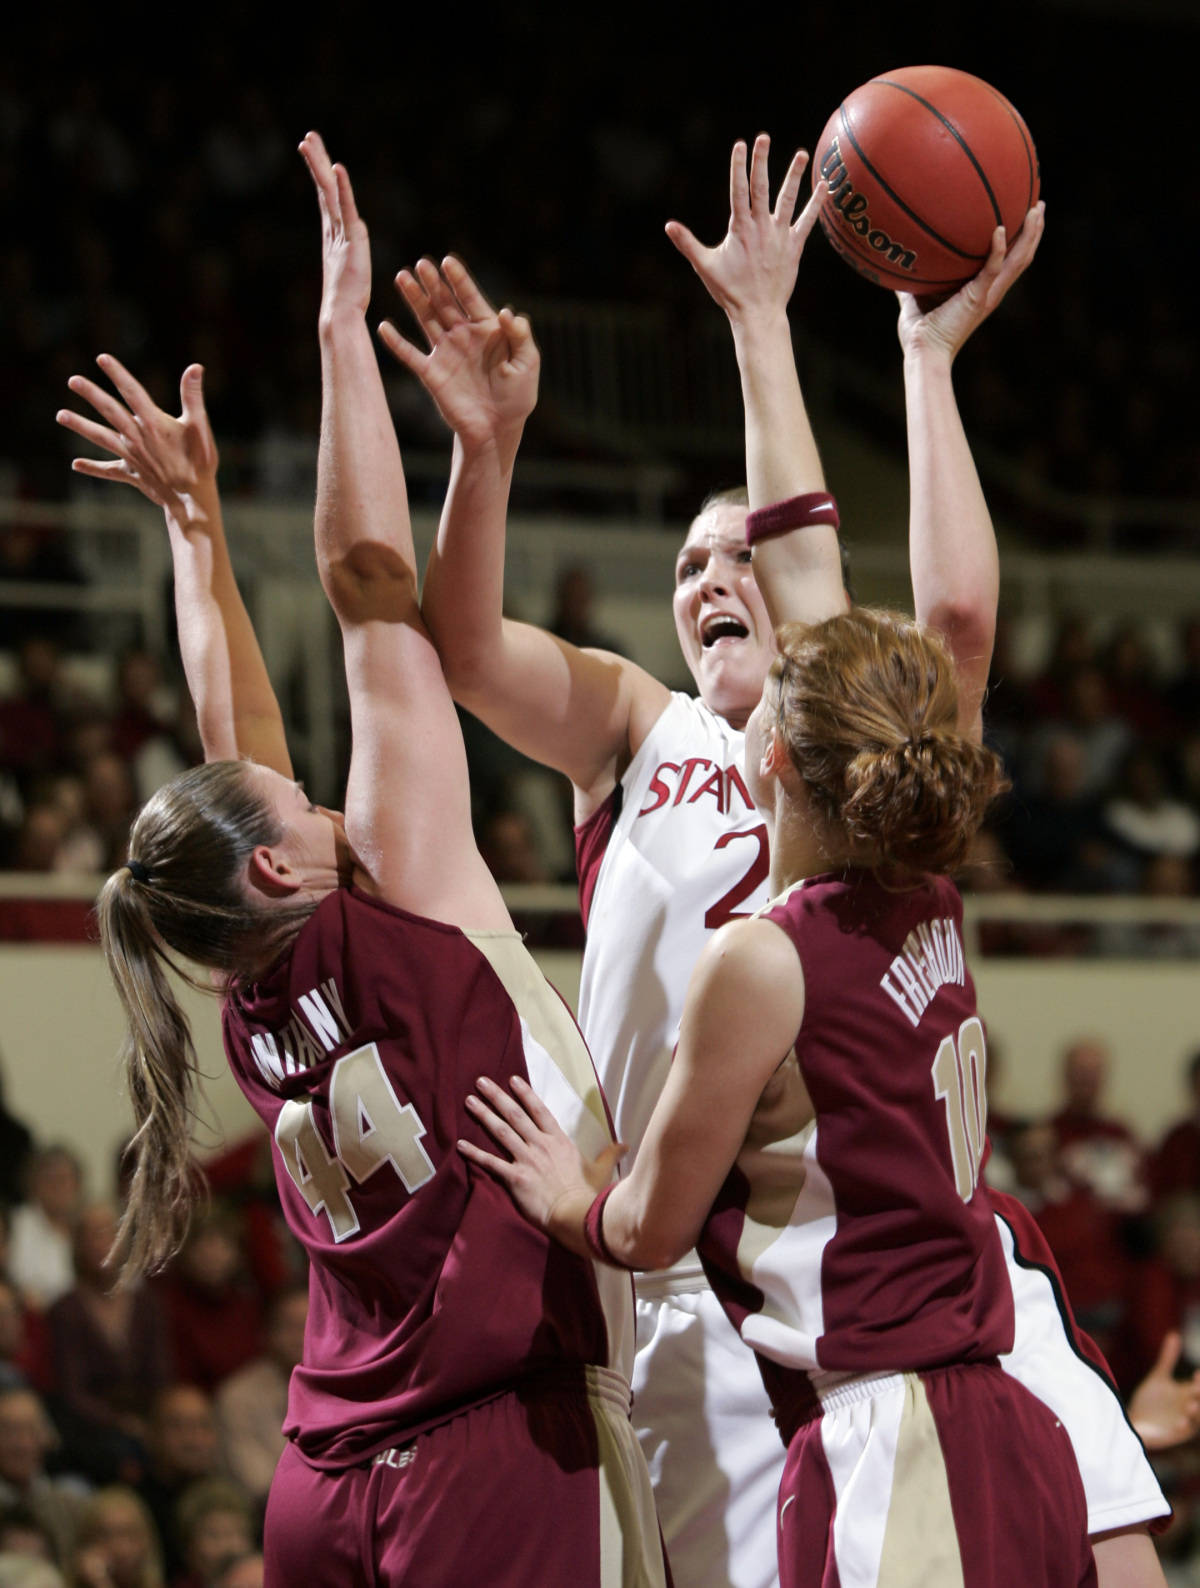 Stanford center Jayne Appel (2) is closely guarded by Florida State center Nikki Anthony (44) and guard Mara Freshour (10) in the first half of their second-round game in the NCAA women's basketball tournament in Stanford, Calif., Monday, March 19, 2007. (AP Photo/Paul Sakuma)